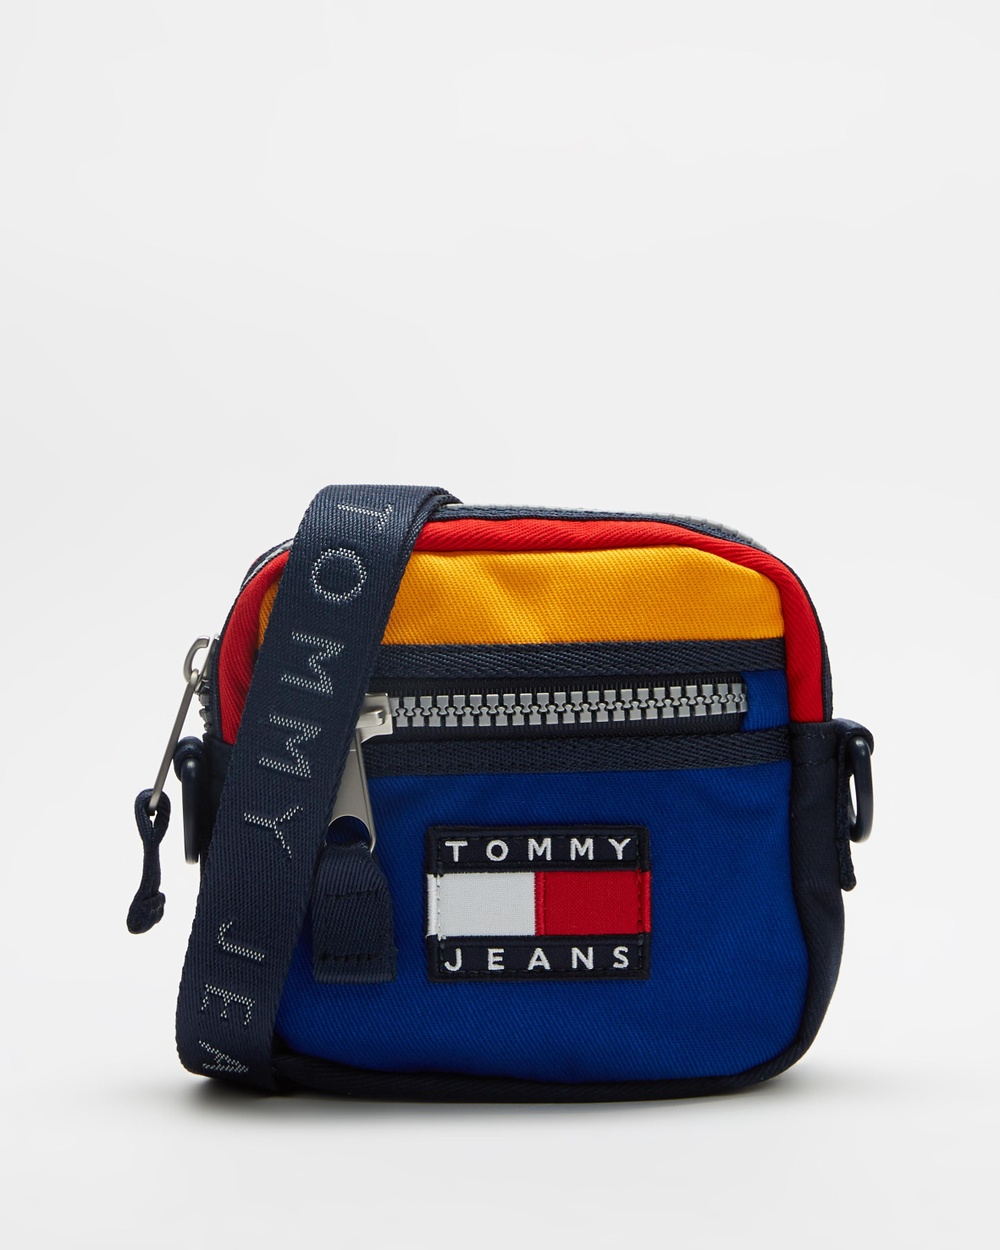 Tommy Jeans Heritage Reporter Bag Bags Midnight & Colour Block